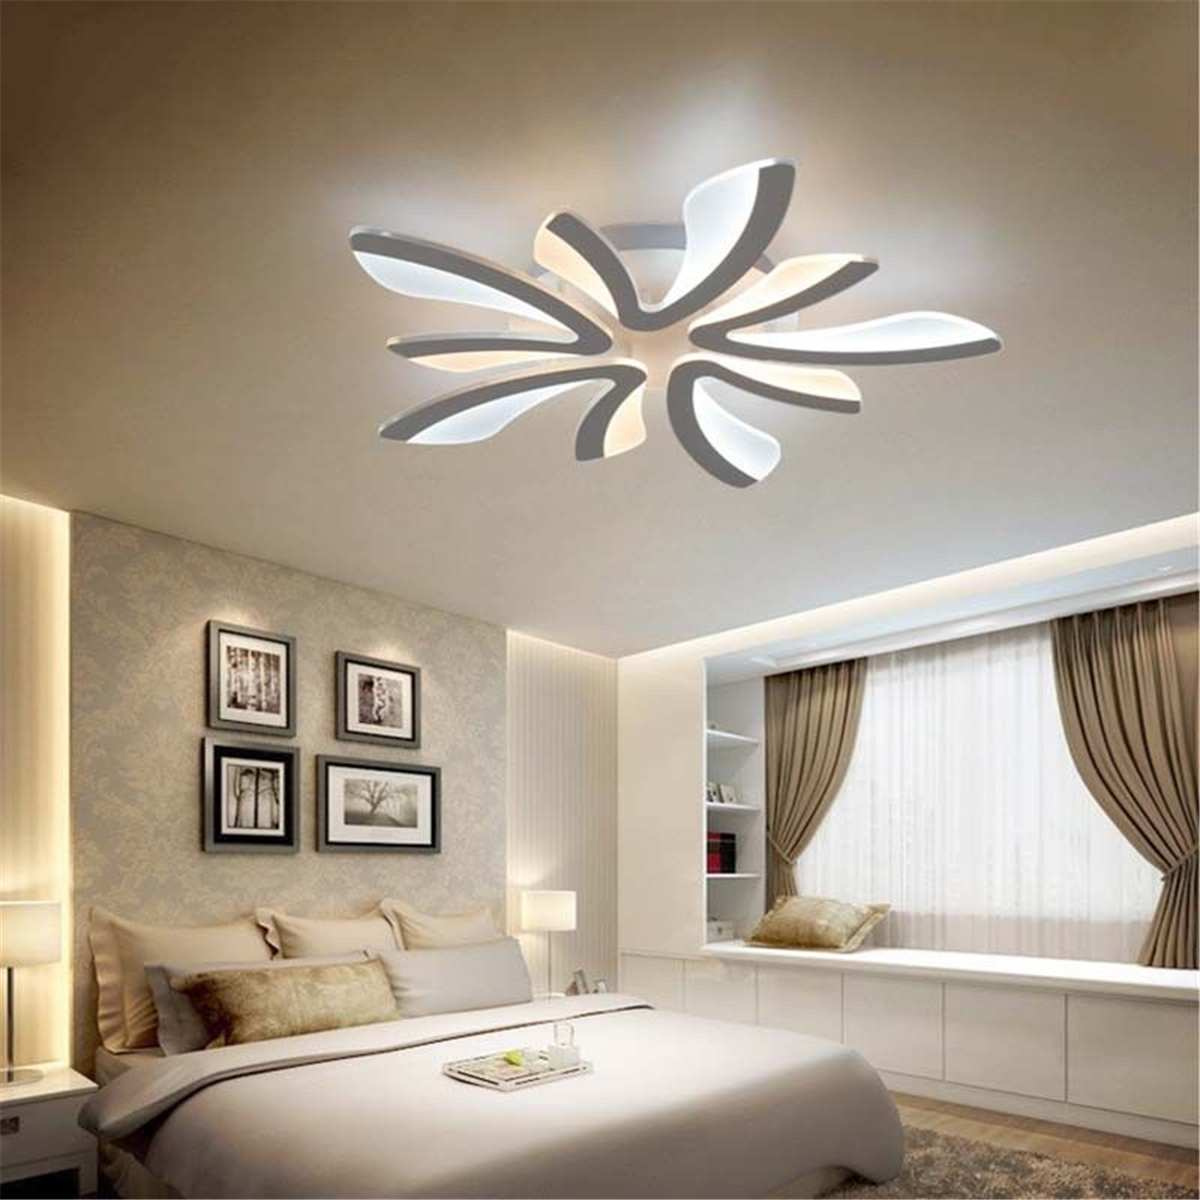 US $54.94 18% OFF|Delicate Modern LED Acrylic Ceiling Lamp Pendant Light  Chandeliers Home Living Room Bedroom Dining Bedroom Decor Light Fixtures-in  ...